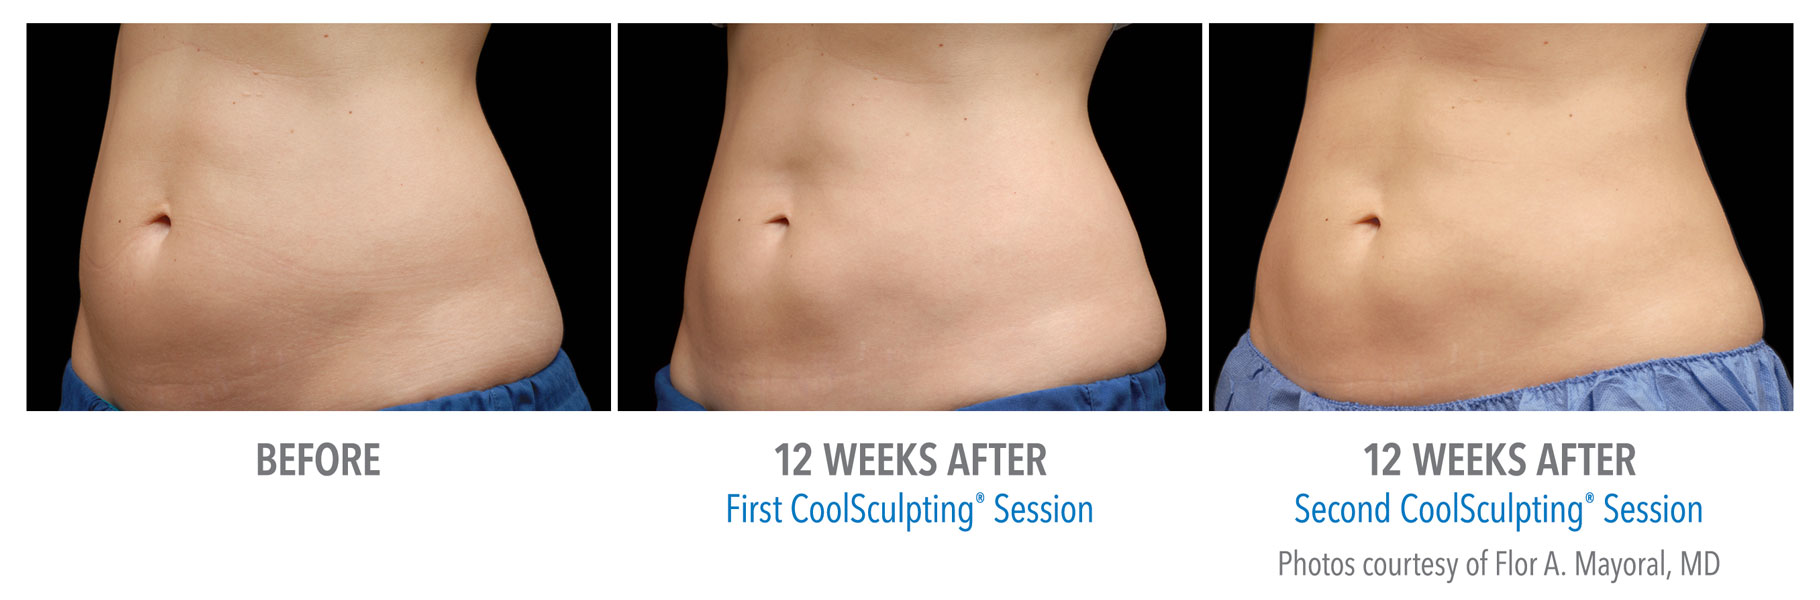 Coolsculpting Near Me   Coolsculpting   Coolsculpting before and after